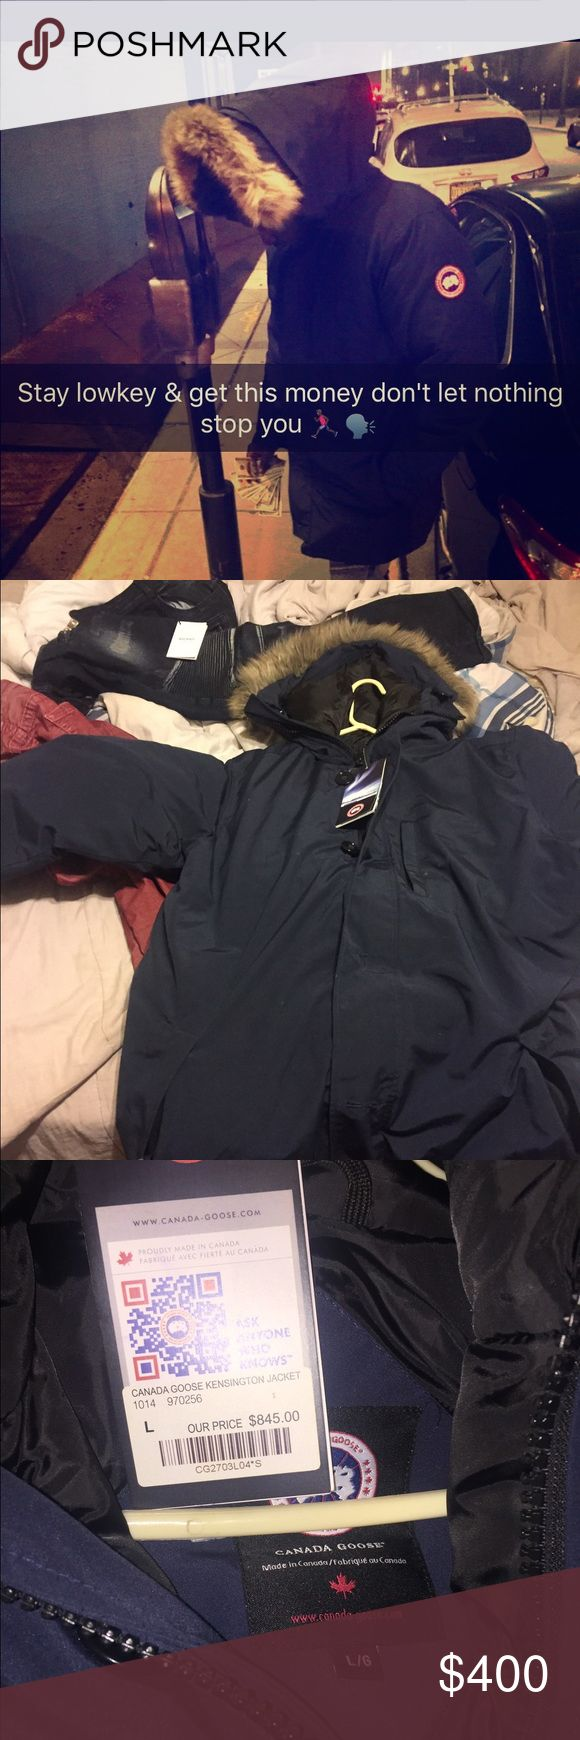 Canada Goose coat Goose coat , size large & still have tags & receipt ,  Fast 2 days priority shipping                         #bape # true religion # embellish # bathing ape #robin jeans #bape # true religion # embellish # bathing ape # ferragamo # Gucci # ax # lv # goyard # Jordan # vlone # supreme Canada Goose Jackets & Coats Raincoats